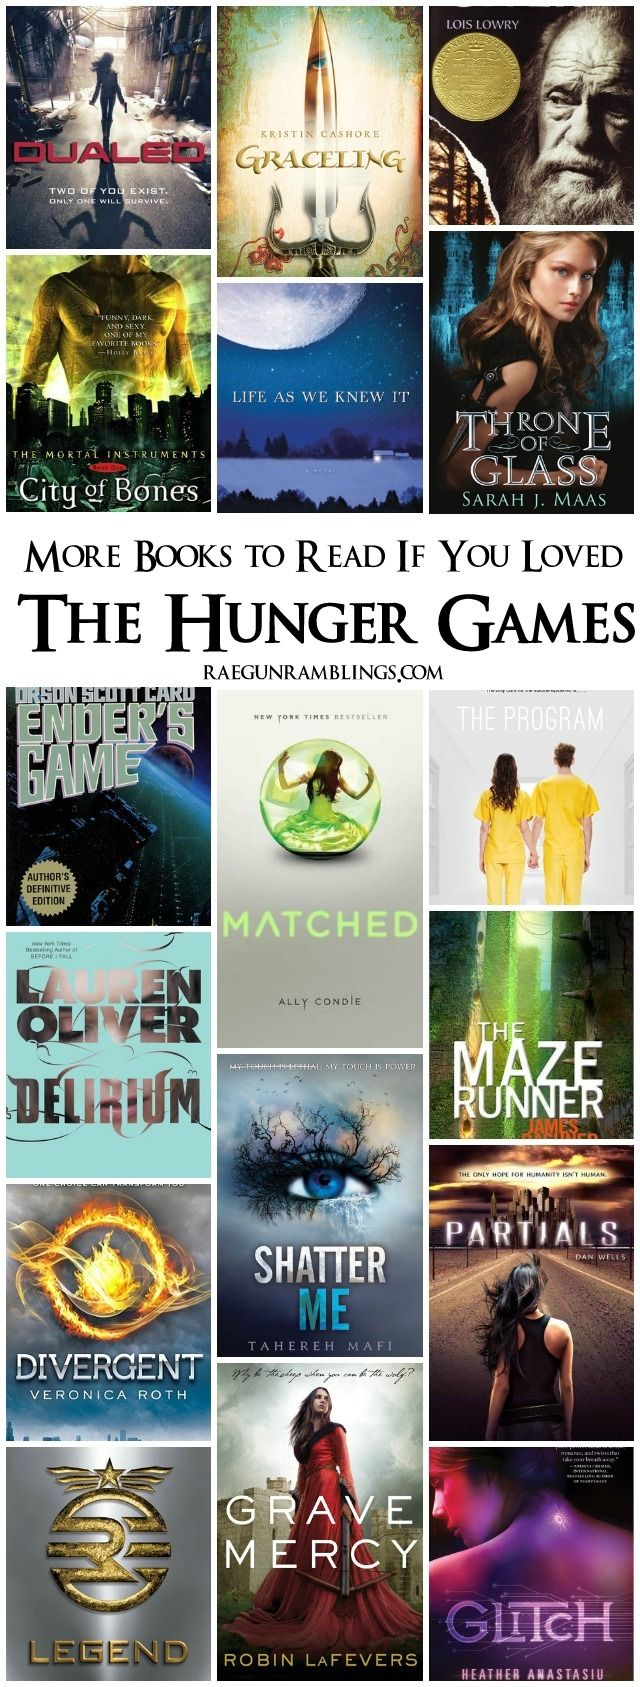 More Books To Read If You Loved The Hunger Games. I read a couple of these and they were great.